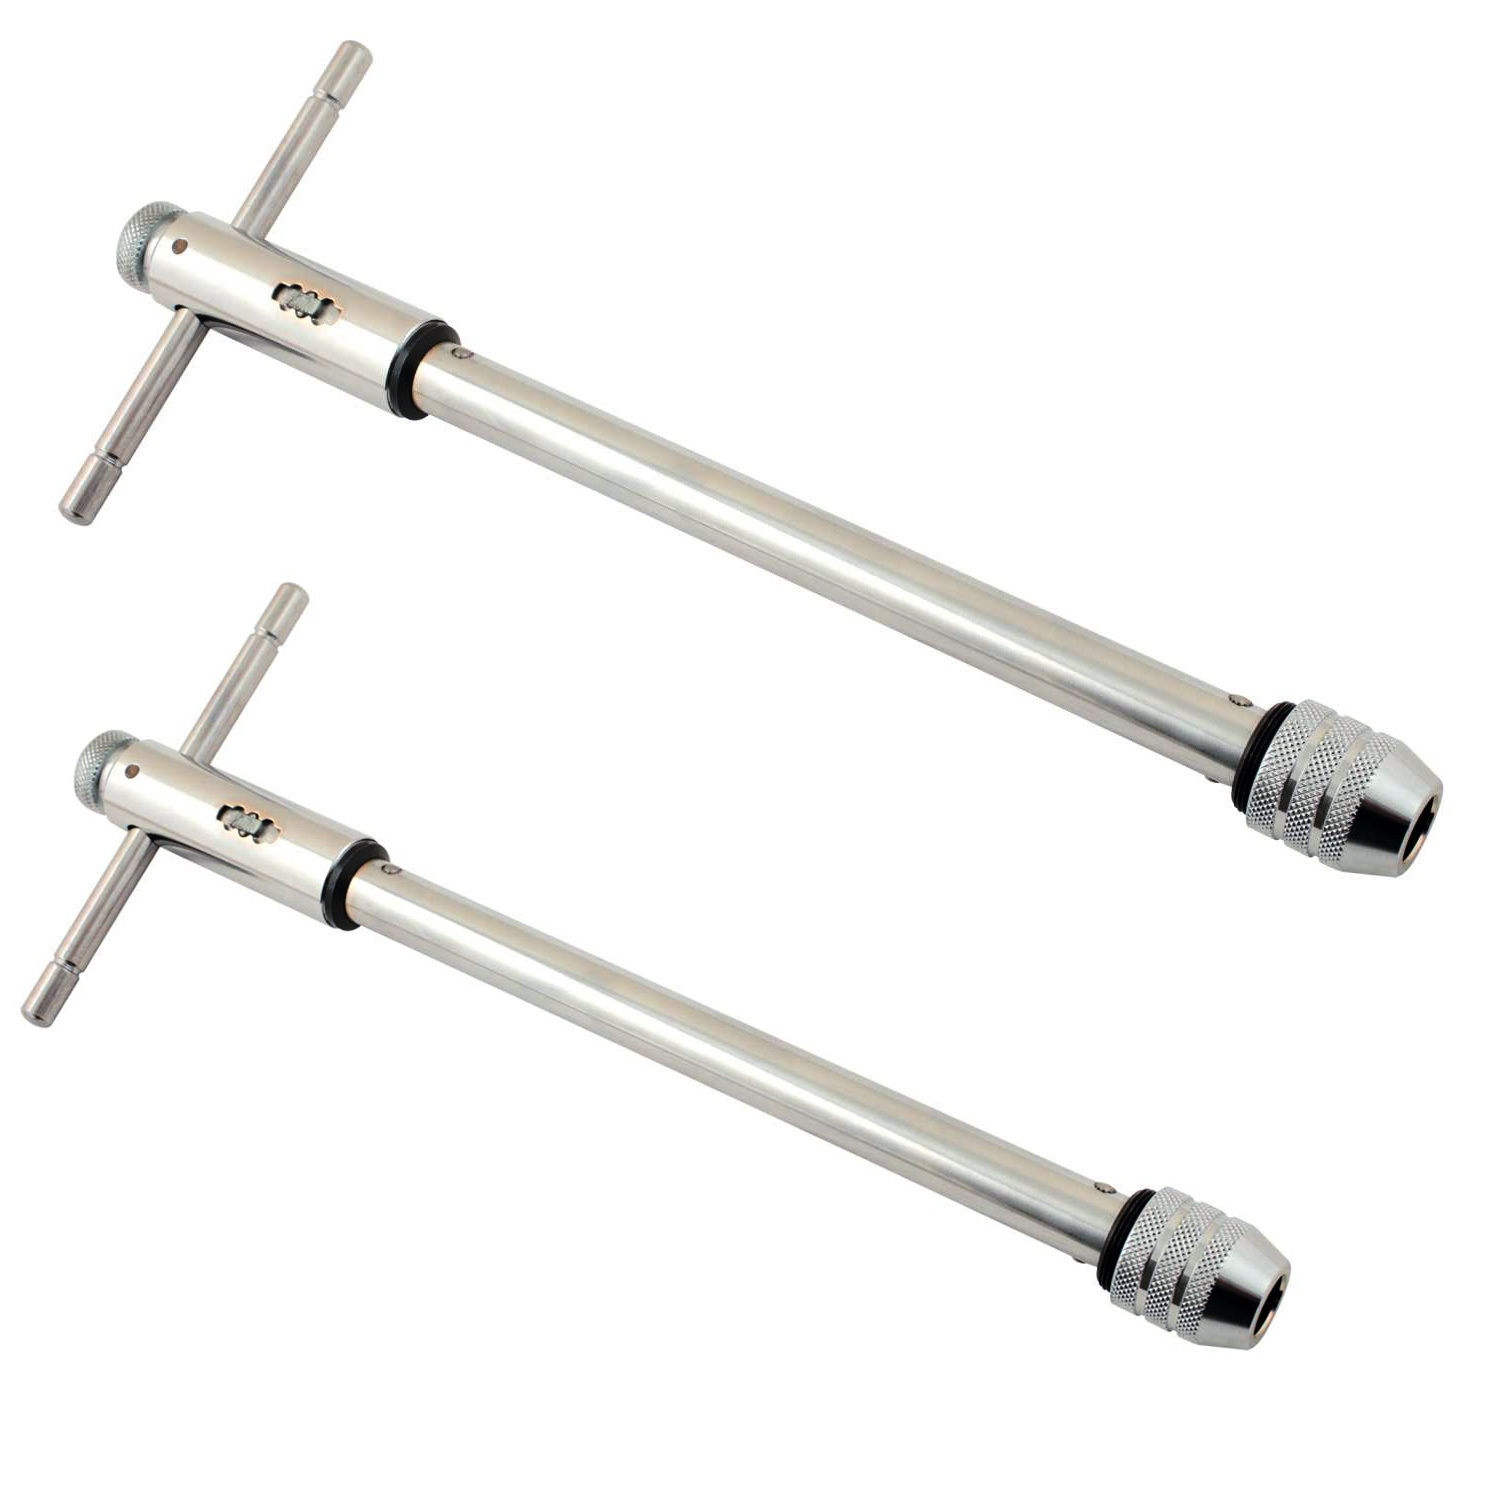 M12 310mm Long Ratchet Tap Wrench Extra Long  M5